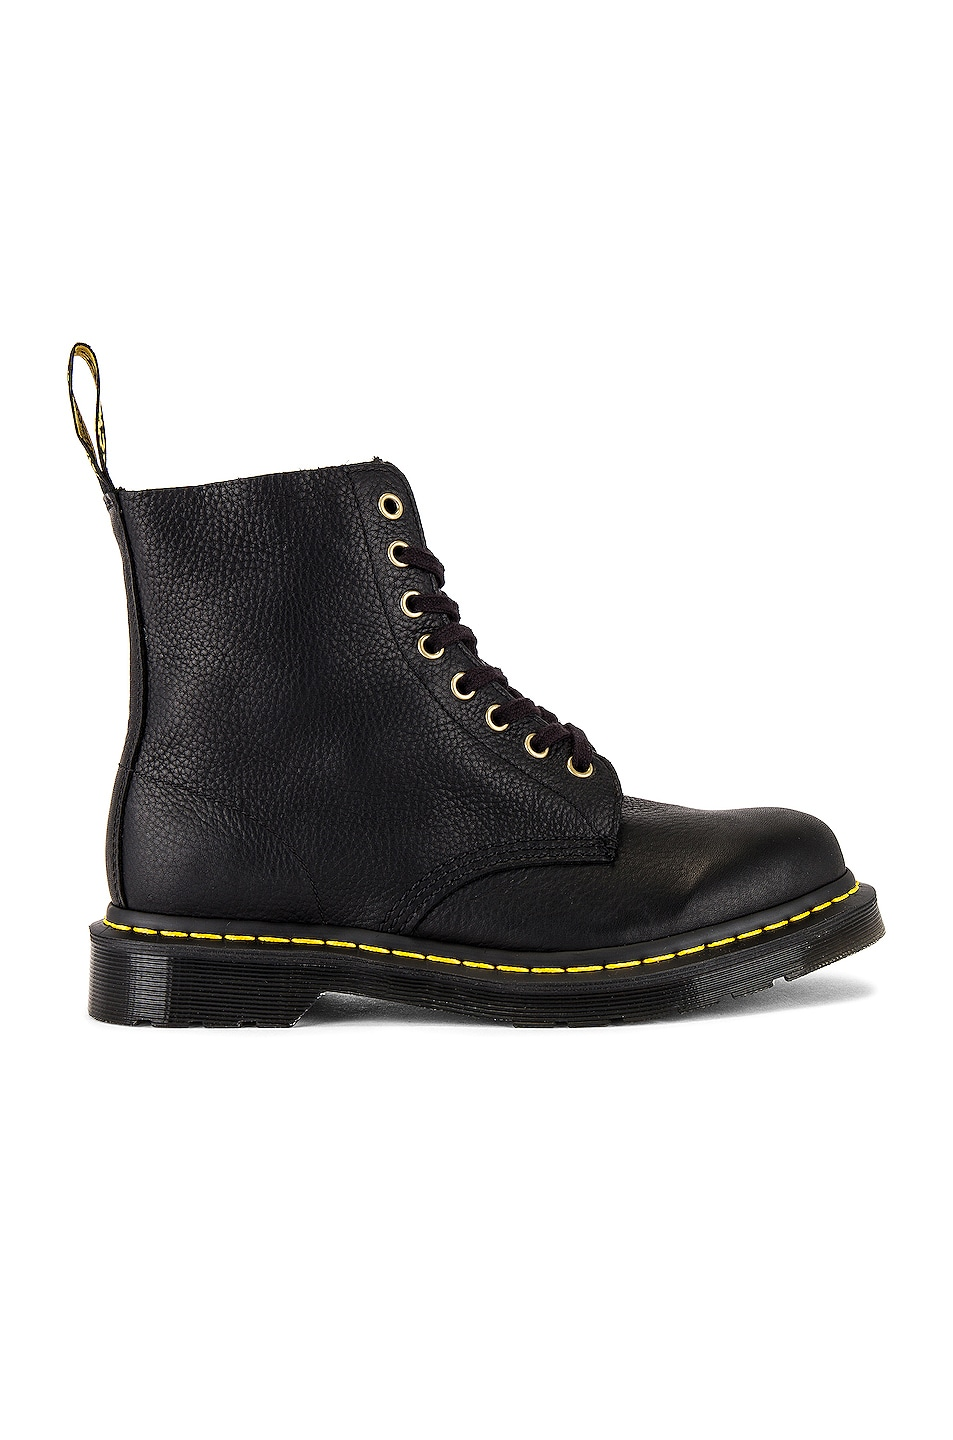 Image 1 of Dr. Martens 1460 Pascal Boot in Black